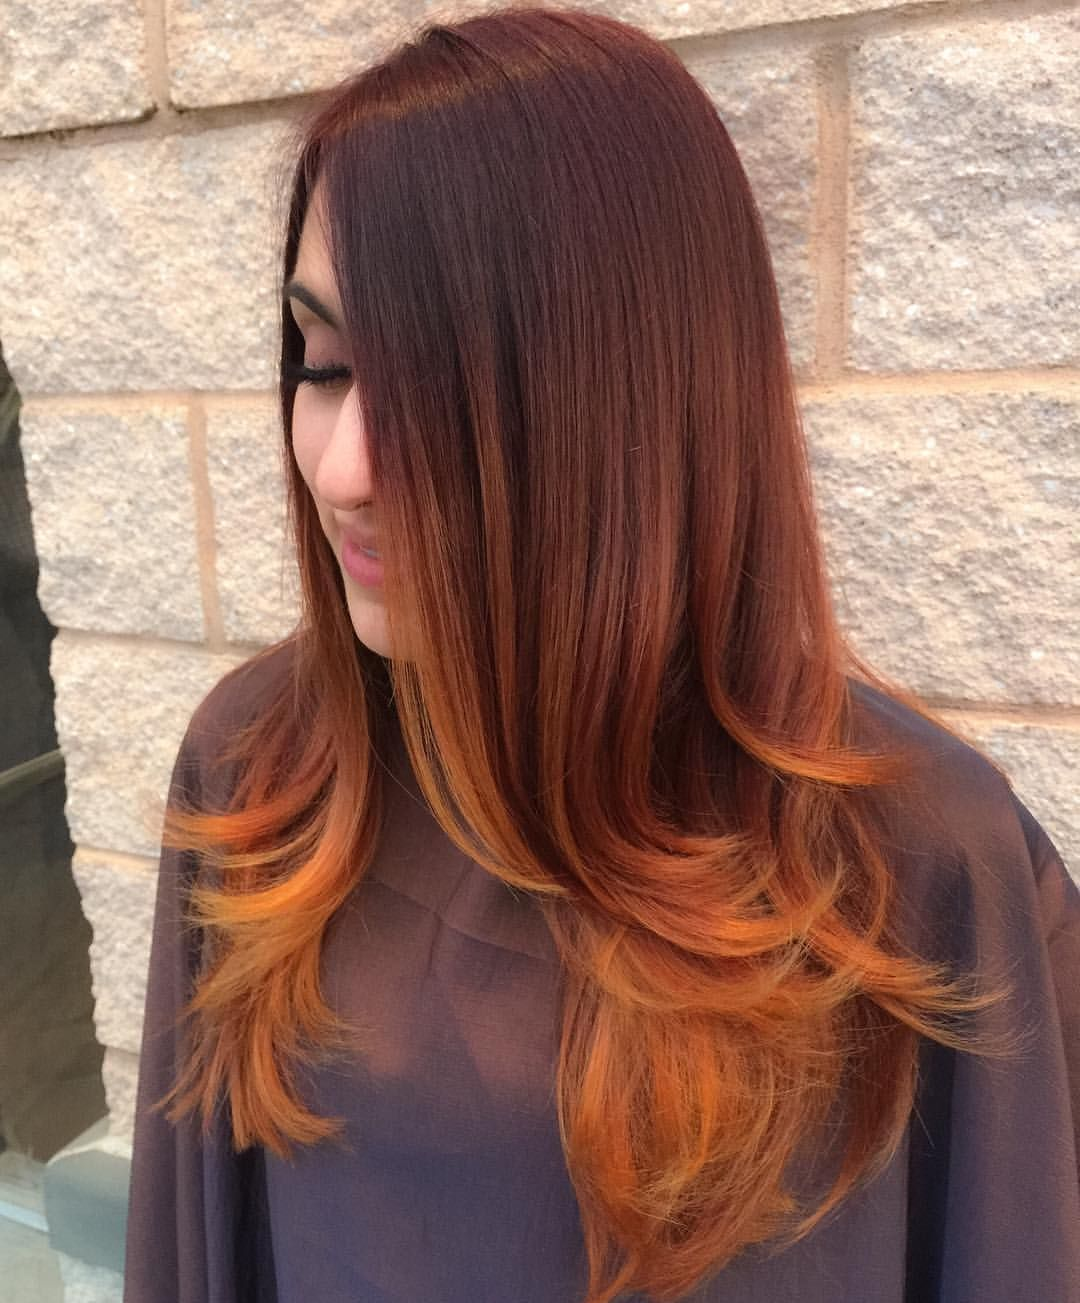 Creative Color And Cut Done By Stylist Sam Hairs Pinterest